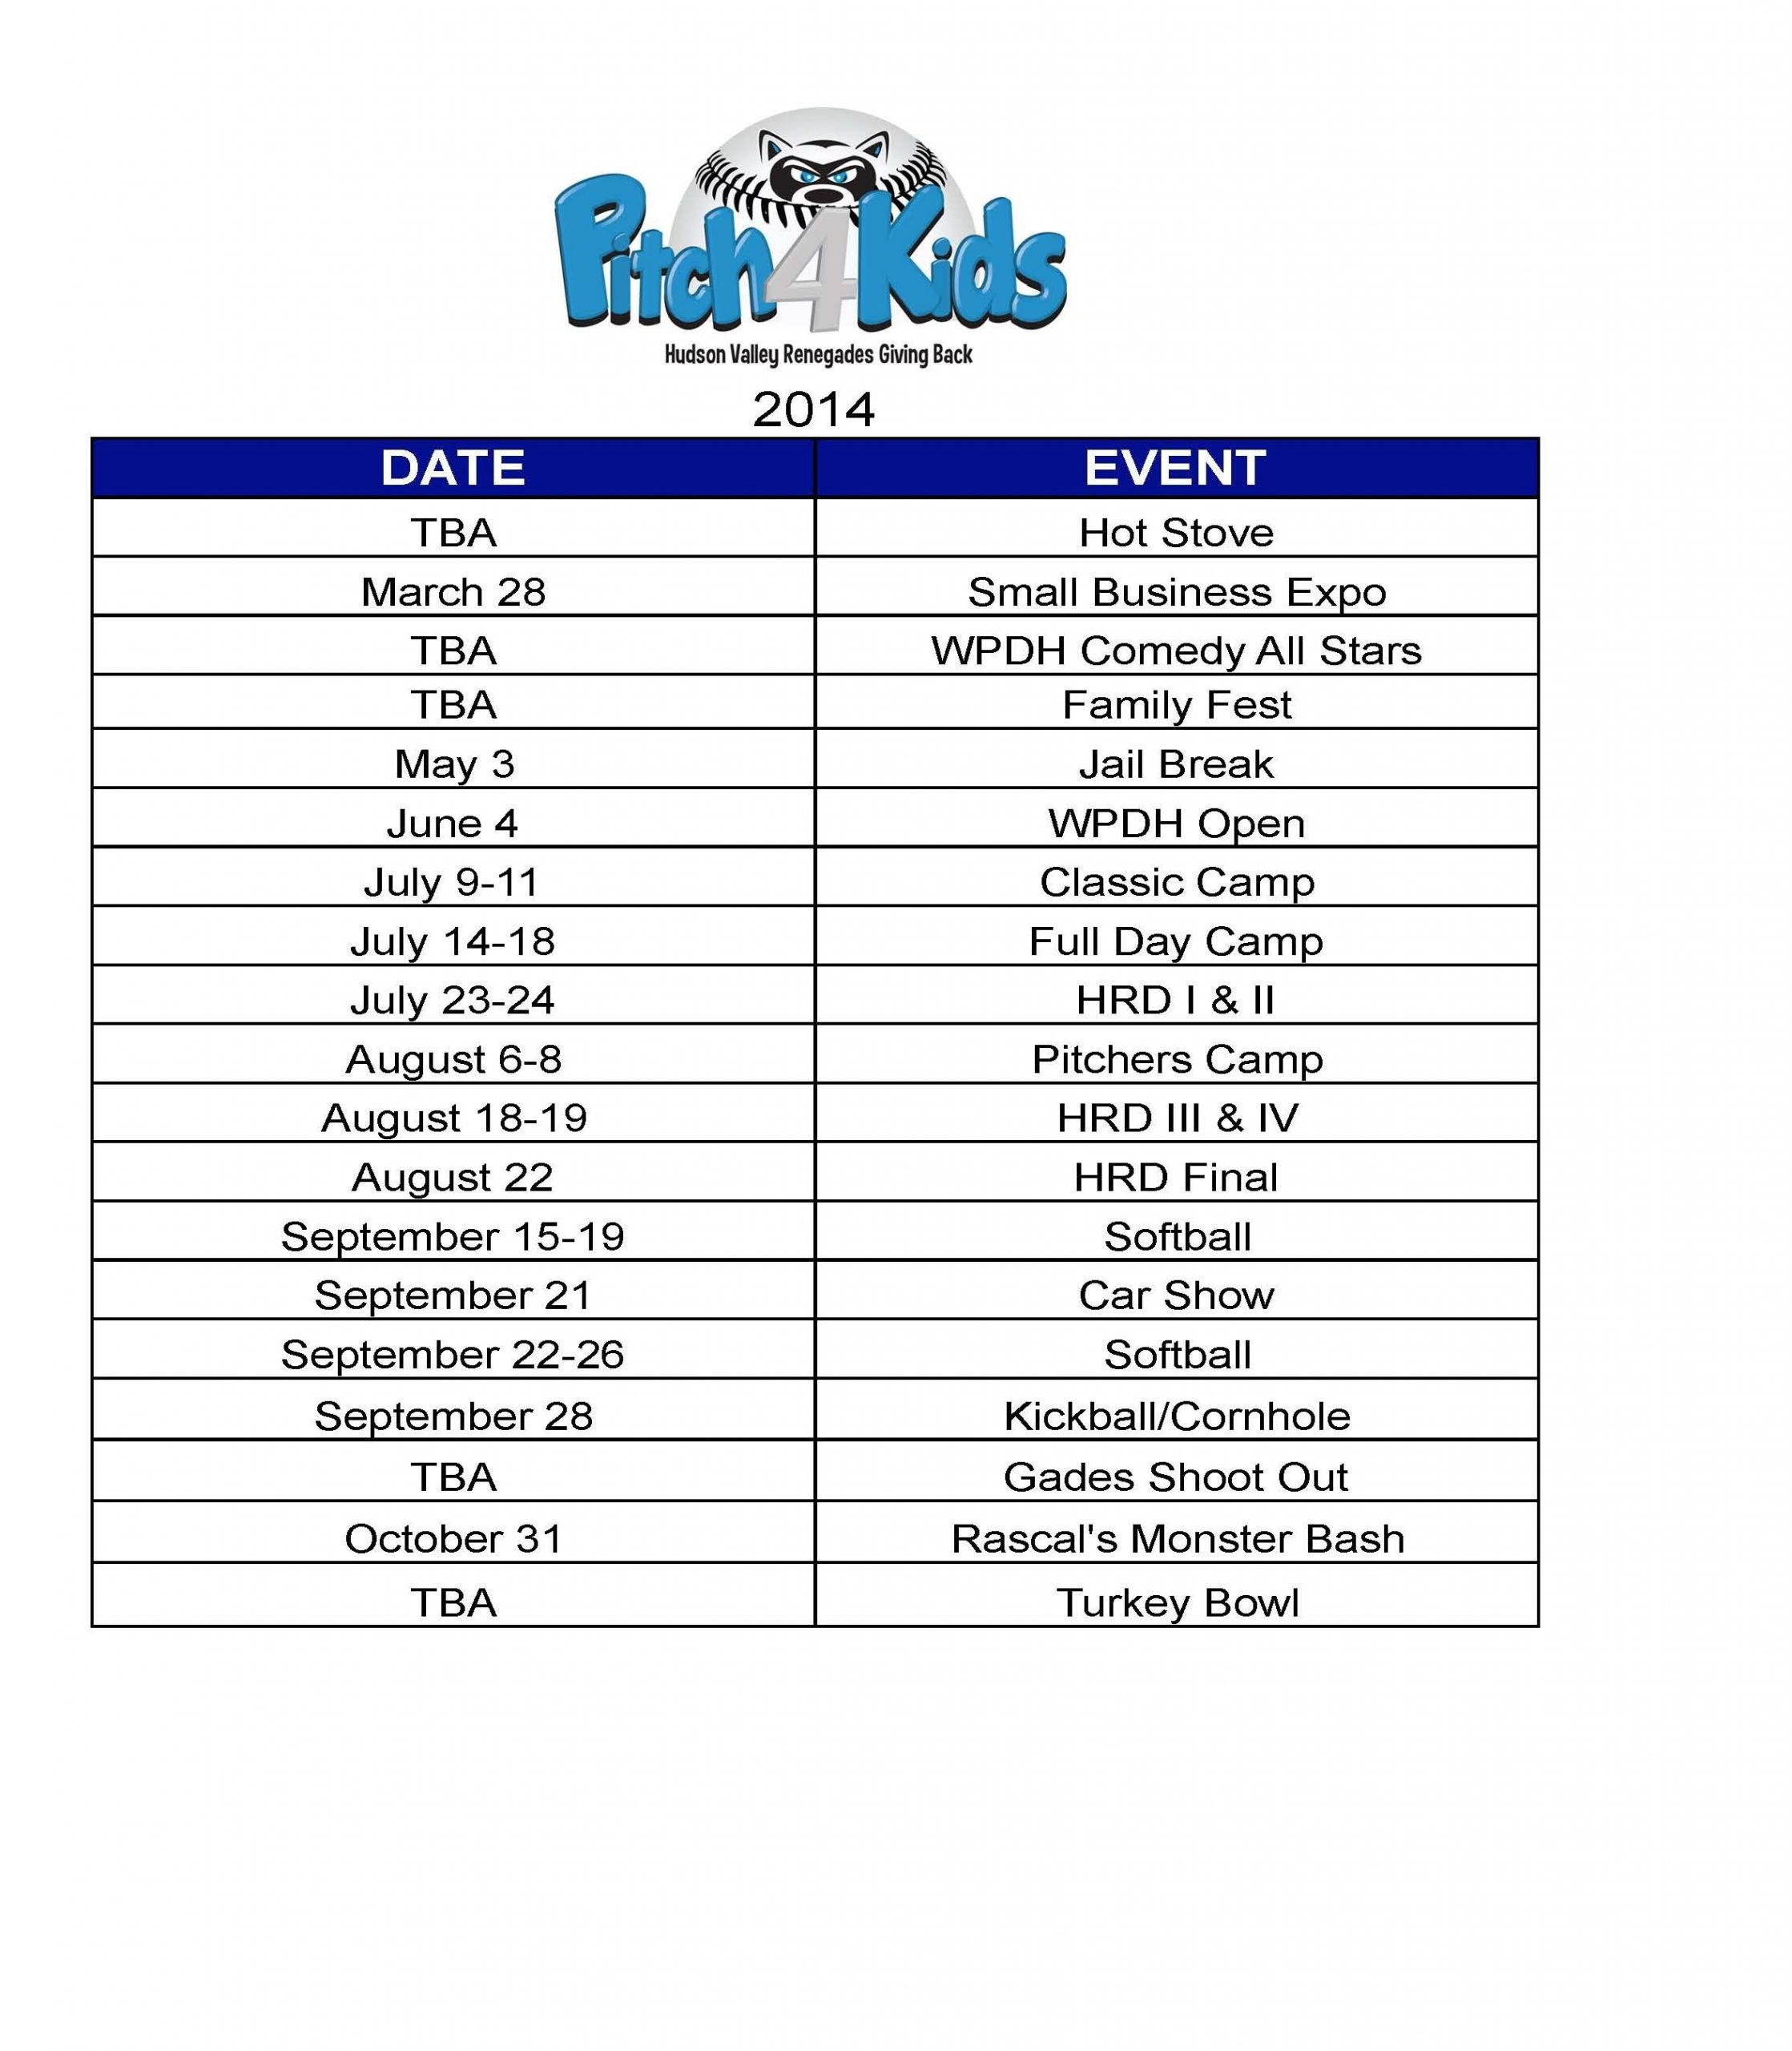 Here Is Our Current Pfk Schedule. As You Can See We Have Calendars That You Can Fill In